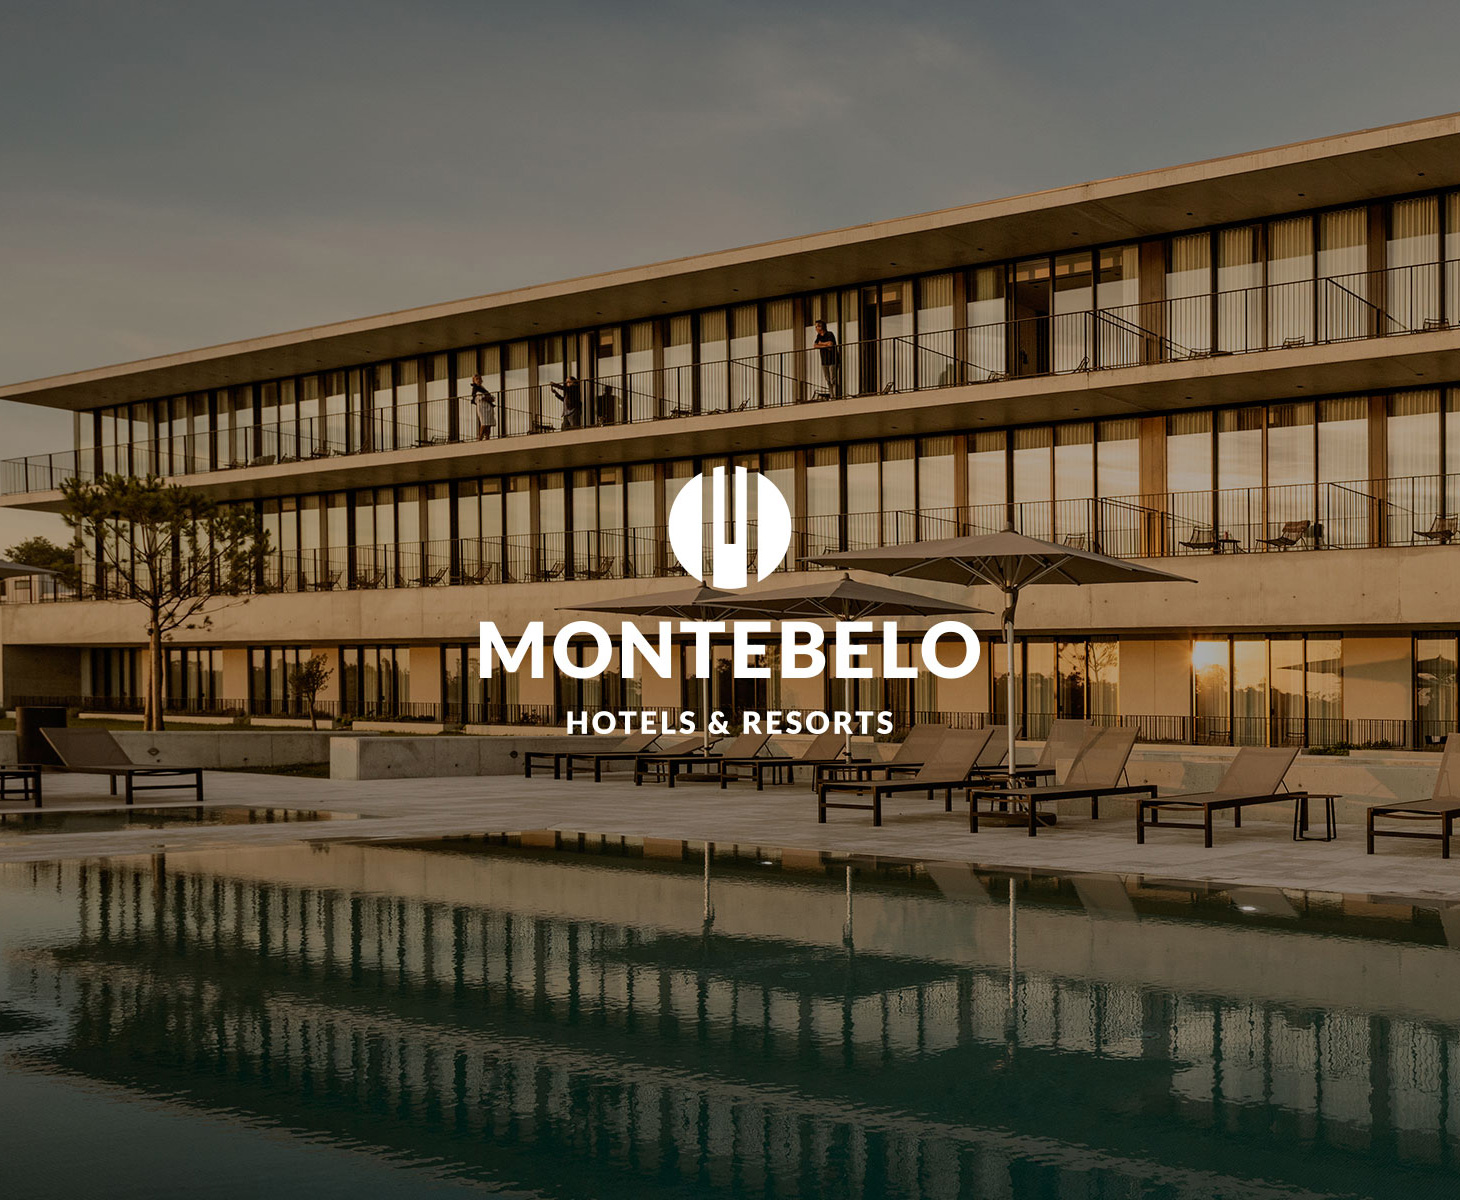 Montebelo Hotels & Resorts